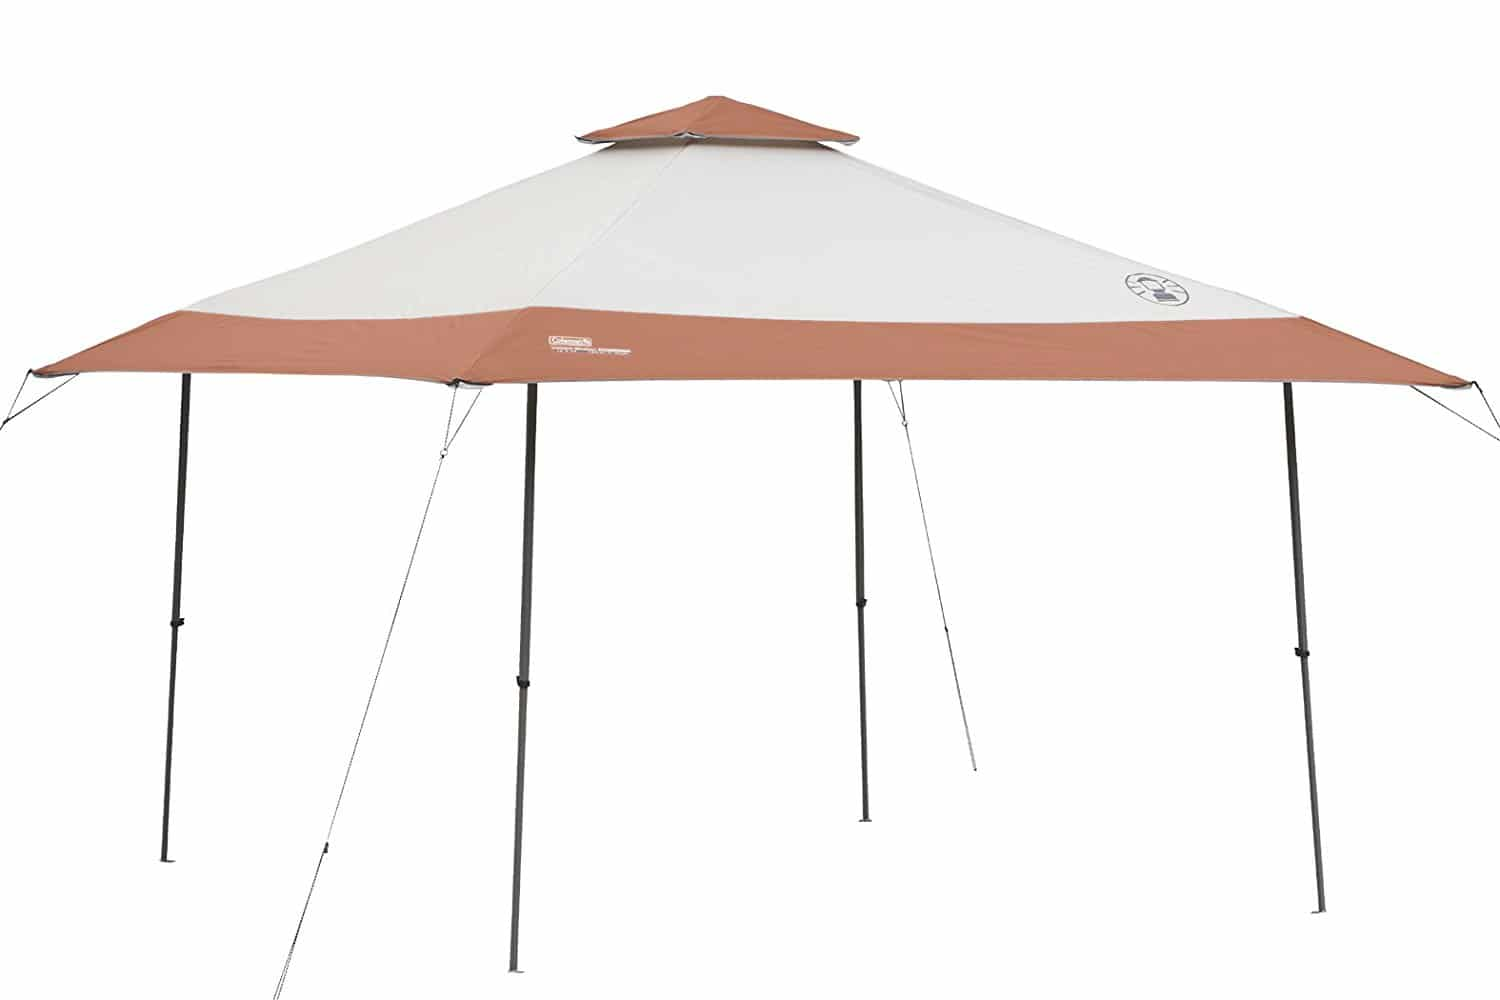 top 10 best canopy tents 2017 - buyer's guide (september. 2017)